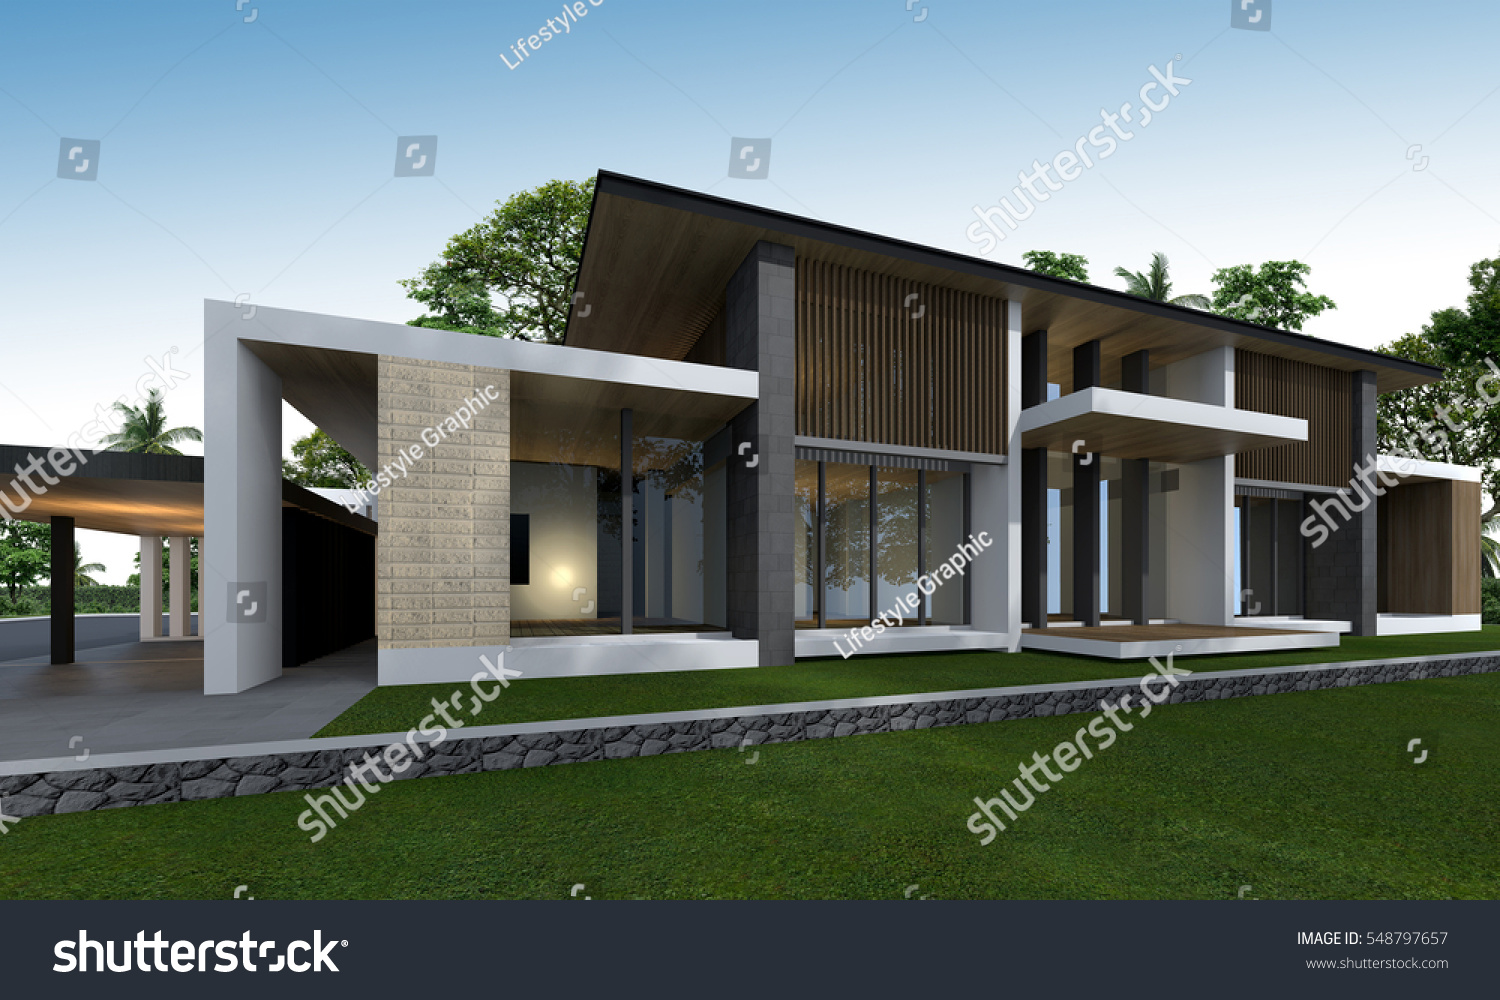 Online image photo editor shutterstock editor for Online architects